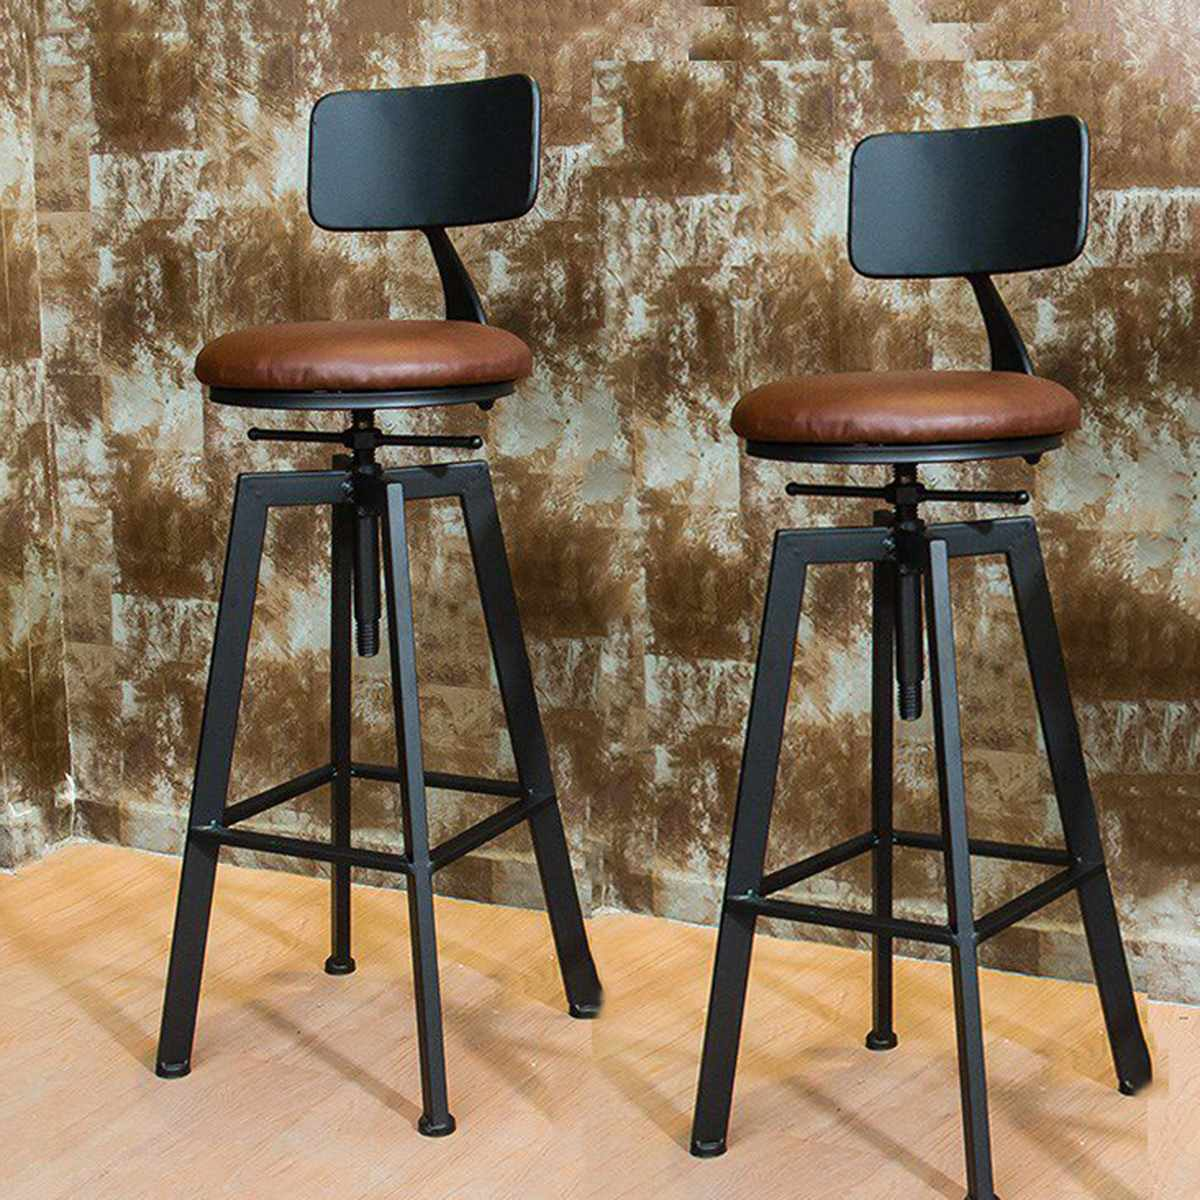 US $113.05 34% OFF|Adjustable VINTAGE RETRO LOOK RUSTIC KITCHEN BAR STOOL  CAFE CHAIR FOR HOME KITCHEN RESTAURANT COFFEE SHOP DINNING-in Bar Chairs ...